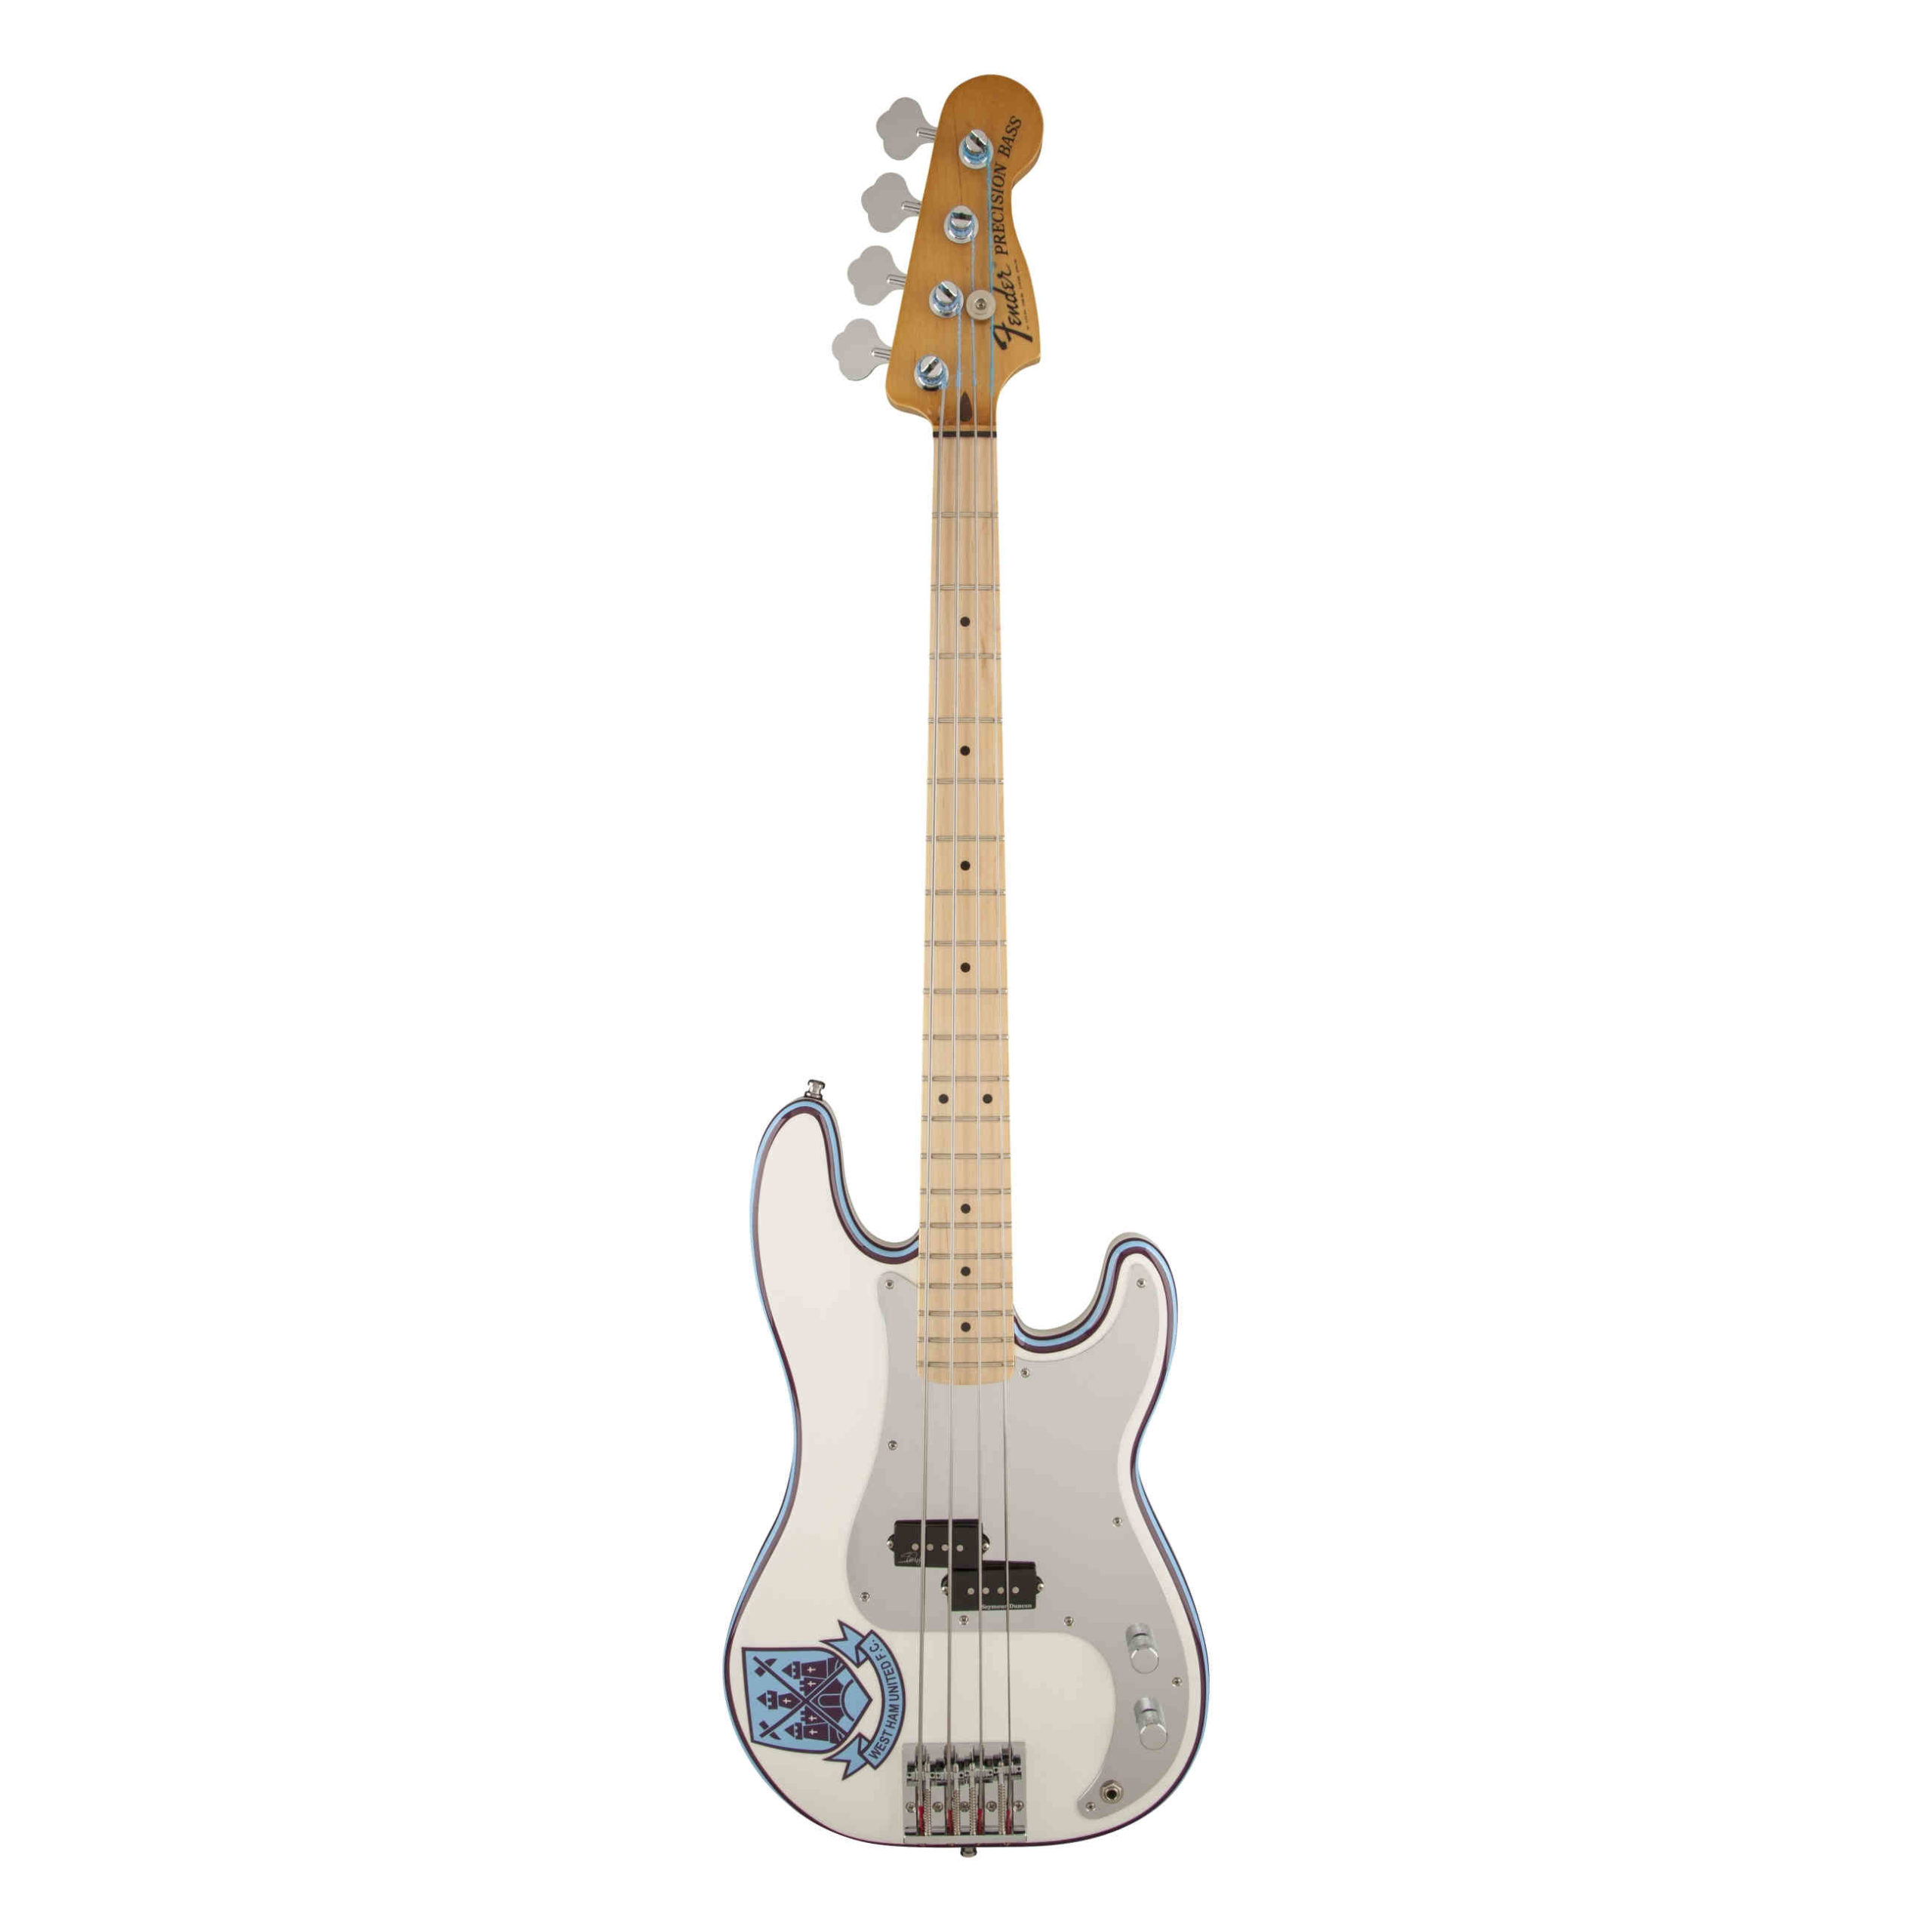 Fender Steve Harris Precision Bass®